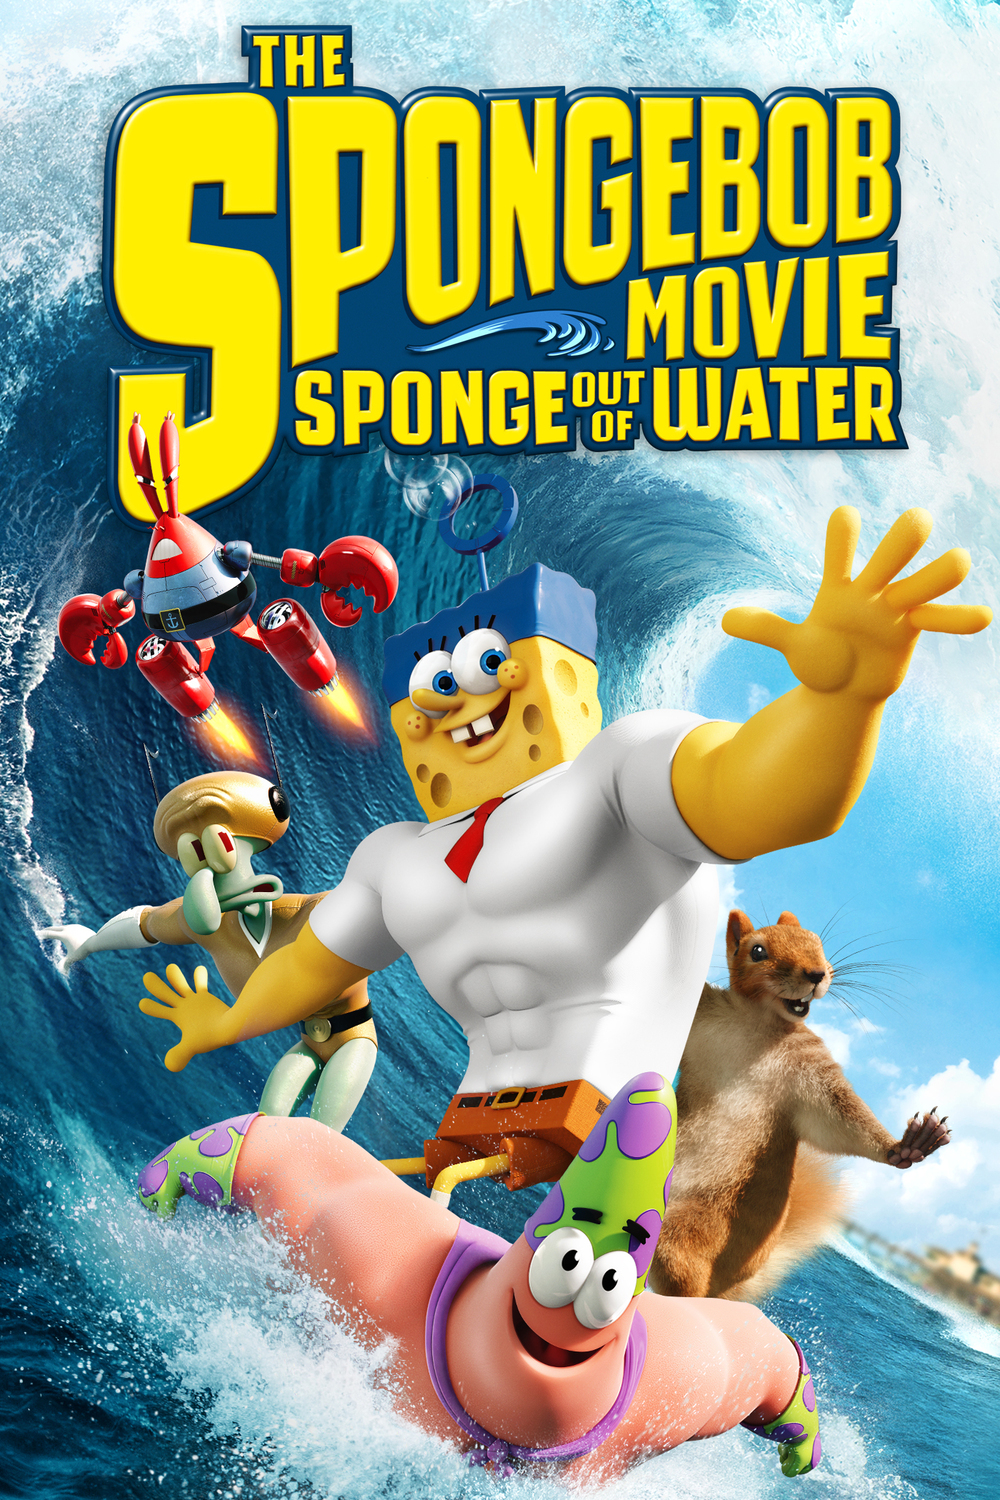 ... SPONGEBOB-MOVIE-Sponge-Out-Of-Water-27-x-40-DVD-Blu-Ray-Release-Poster